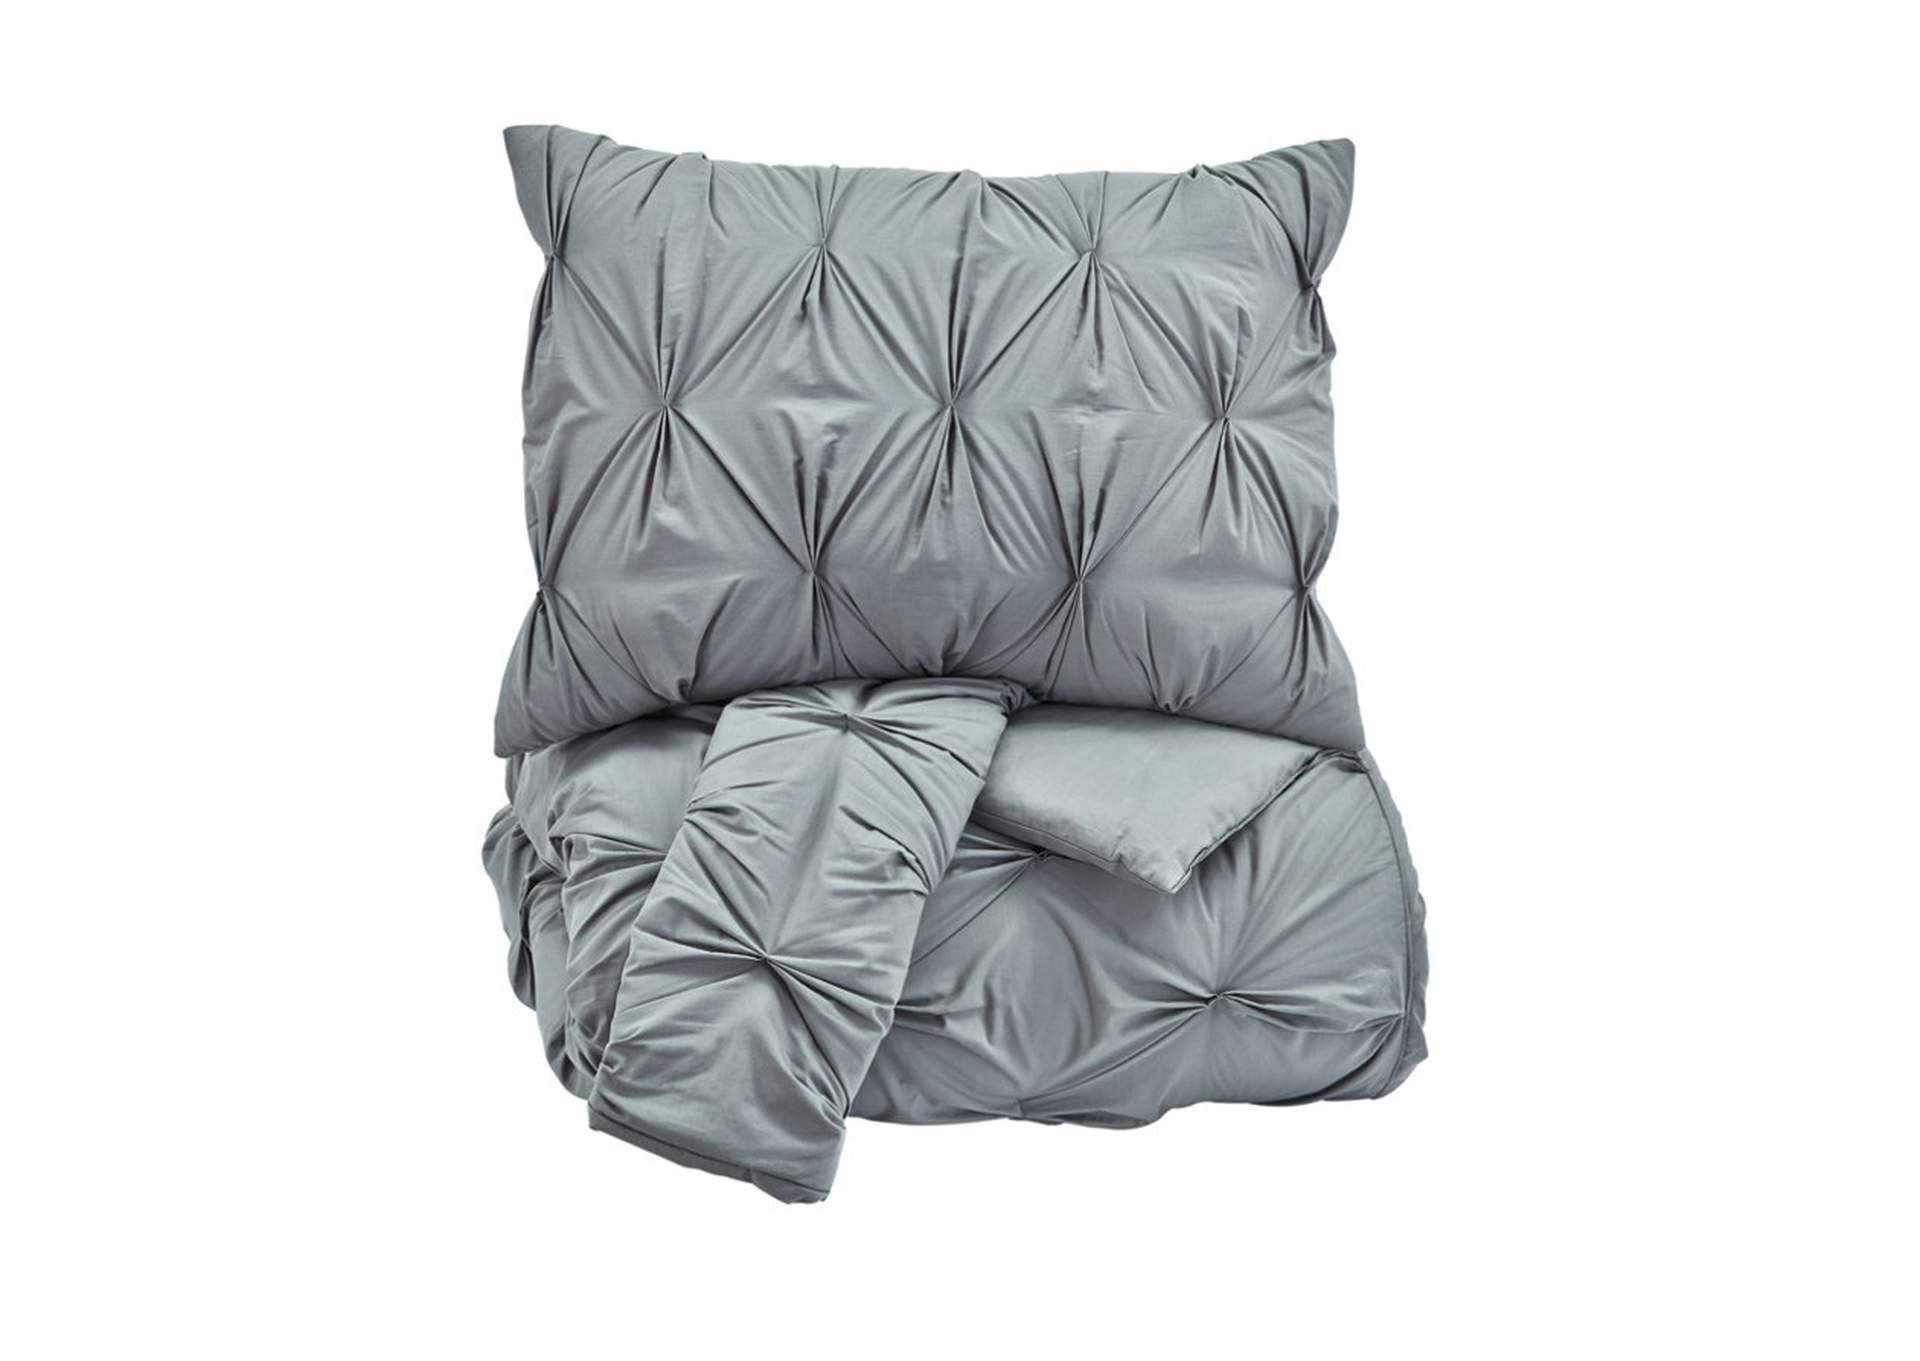 Rimy Gray King Comforter Set,Signature Design By Ashley